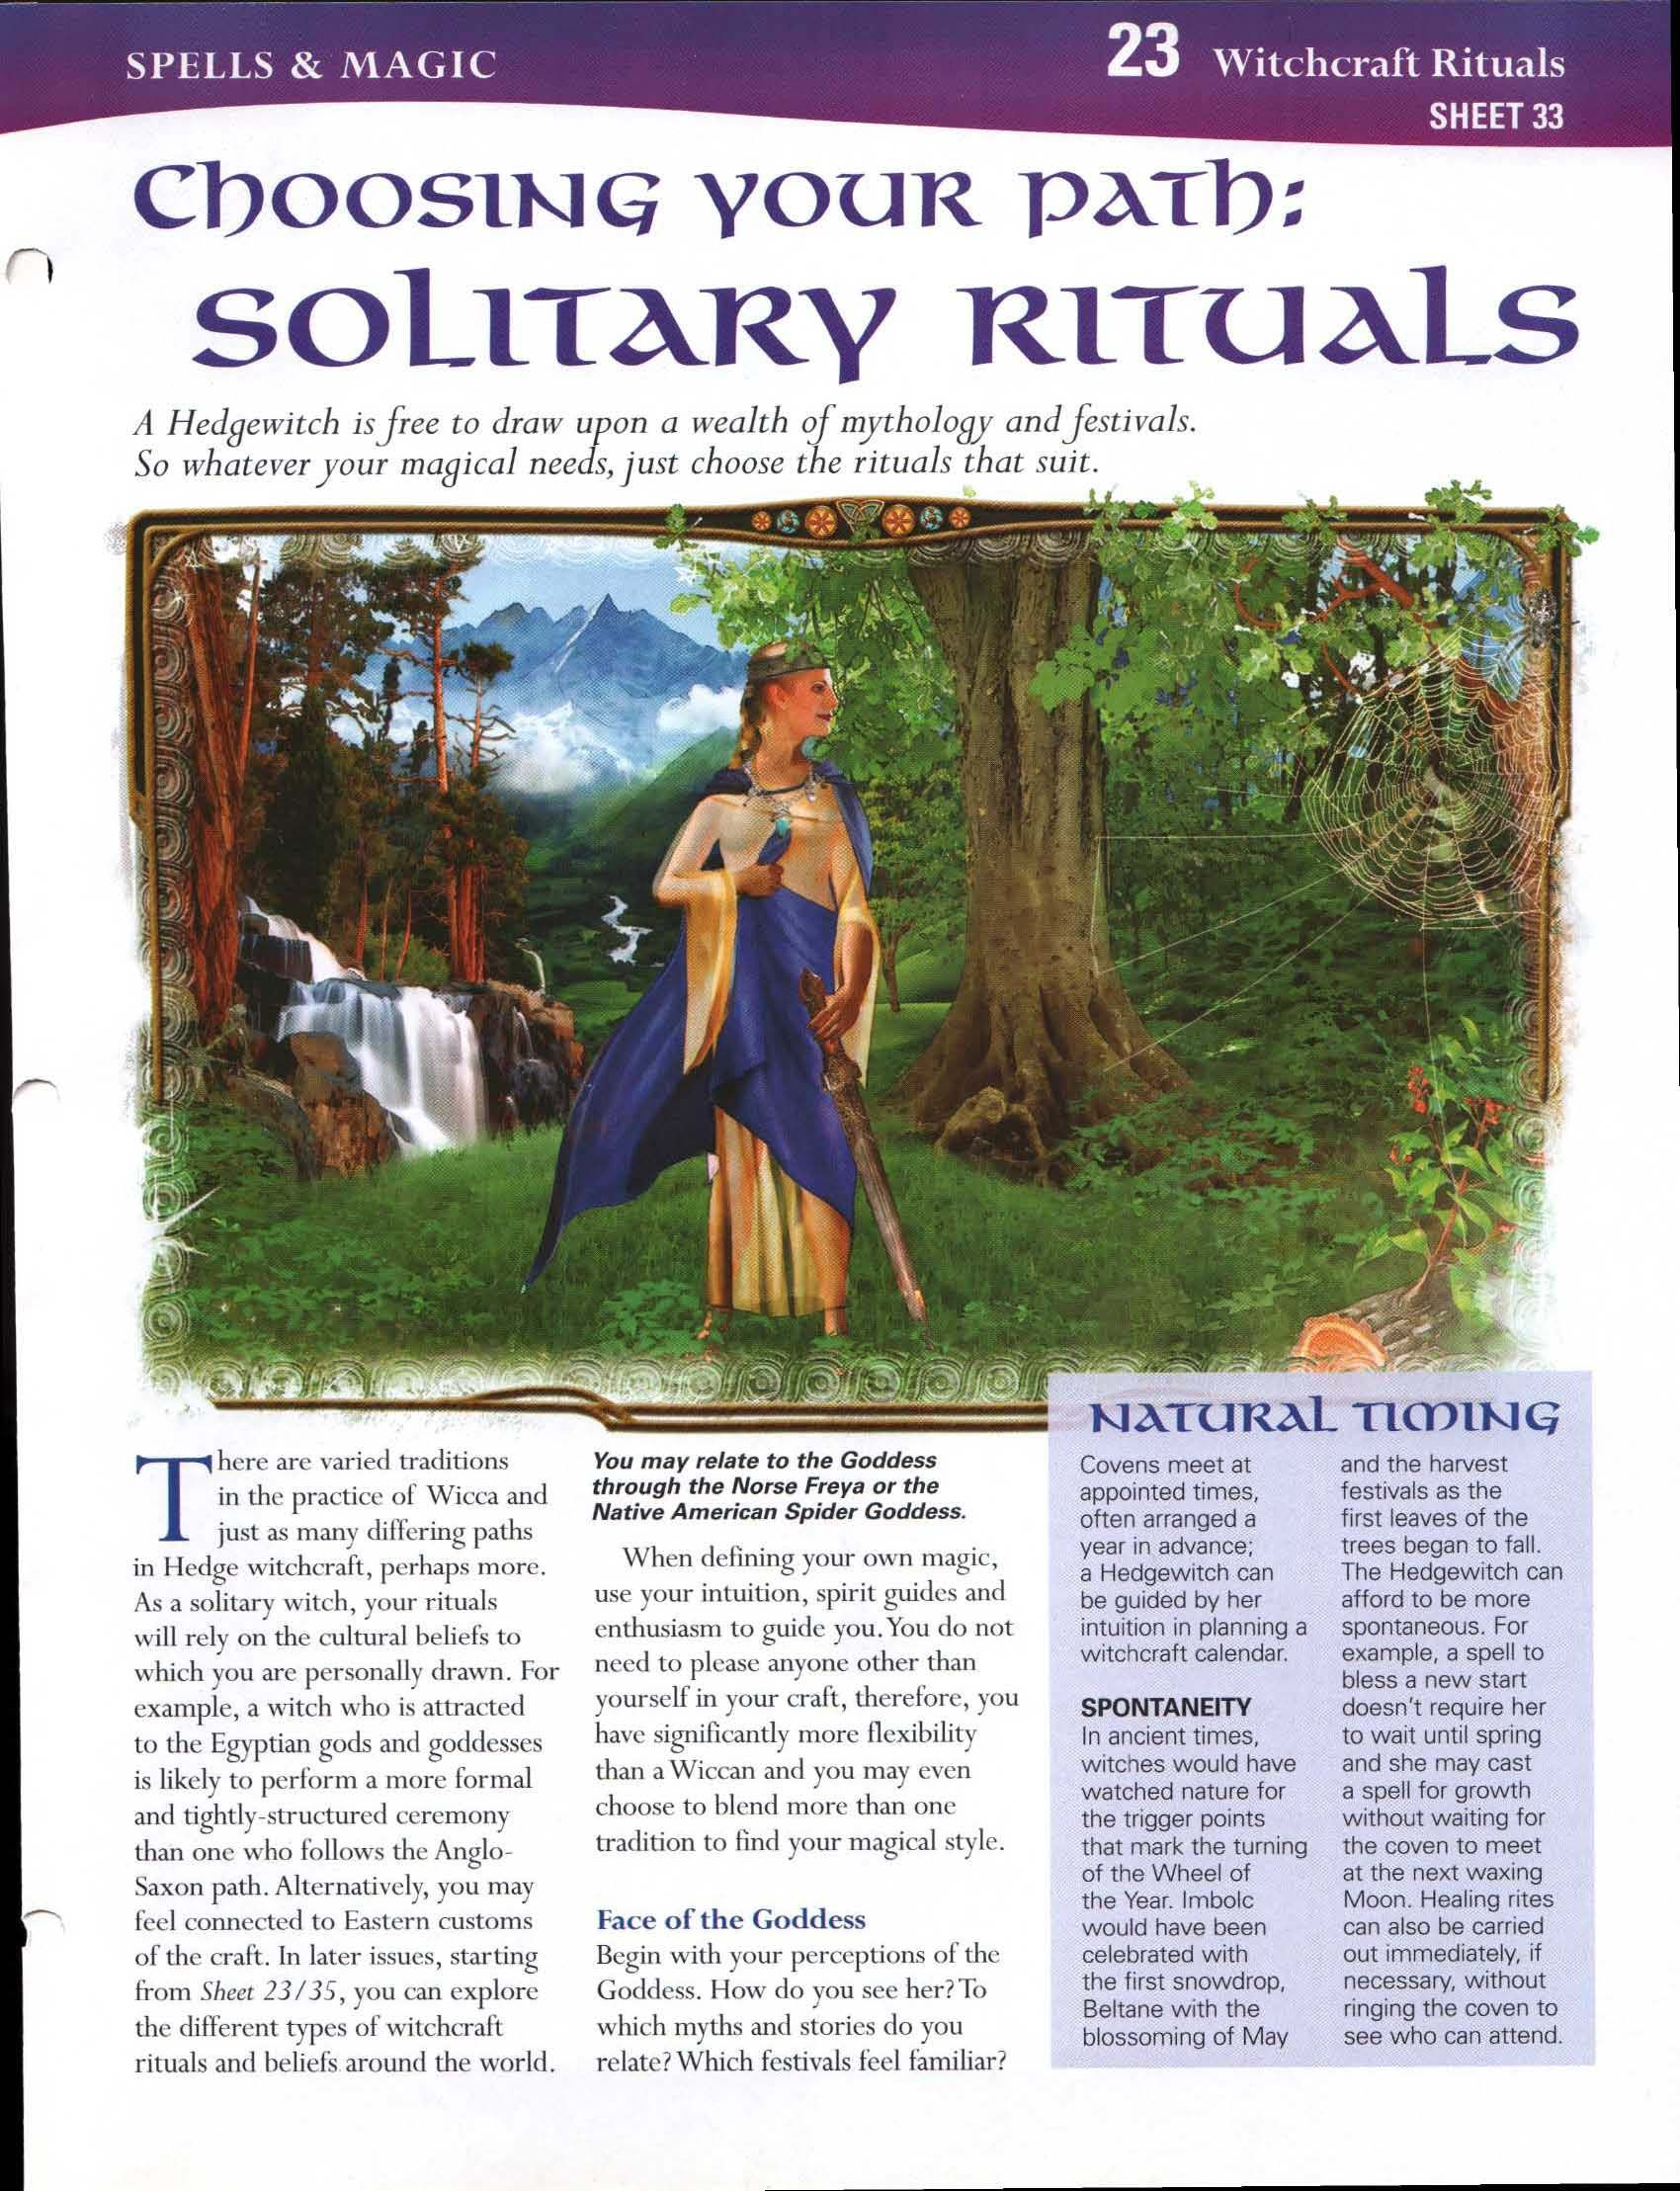 Choosing Your Path: Solitary Rituals | Pagan/wicca | Book of